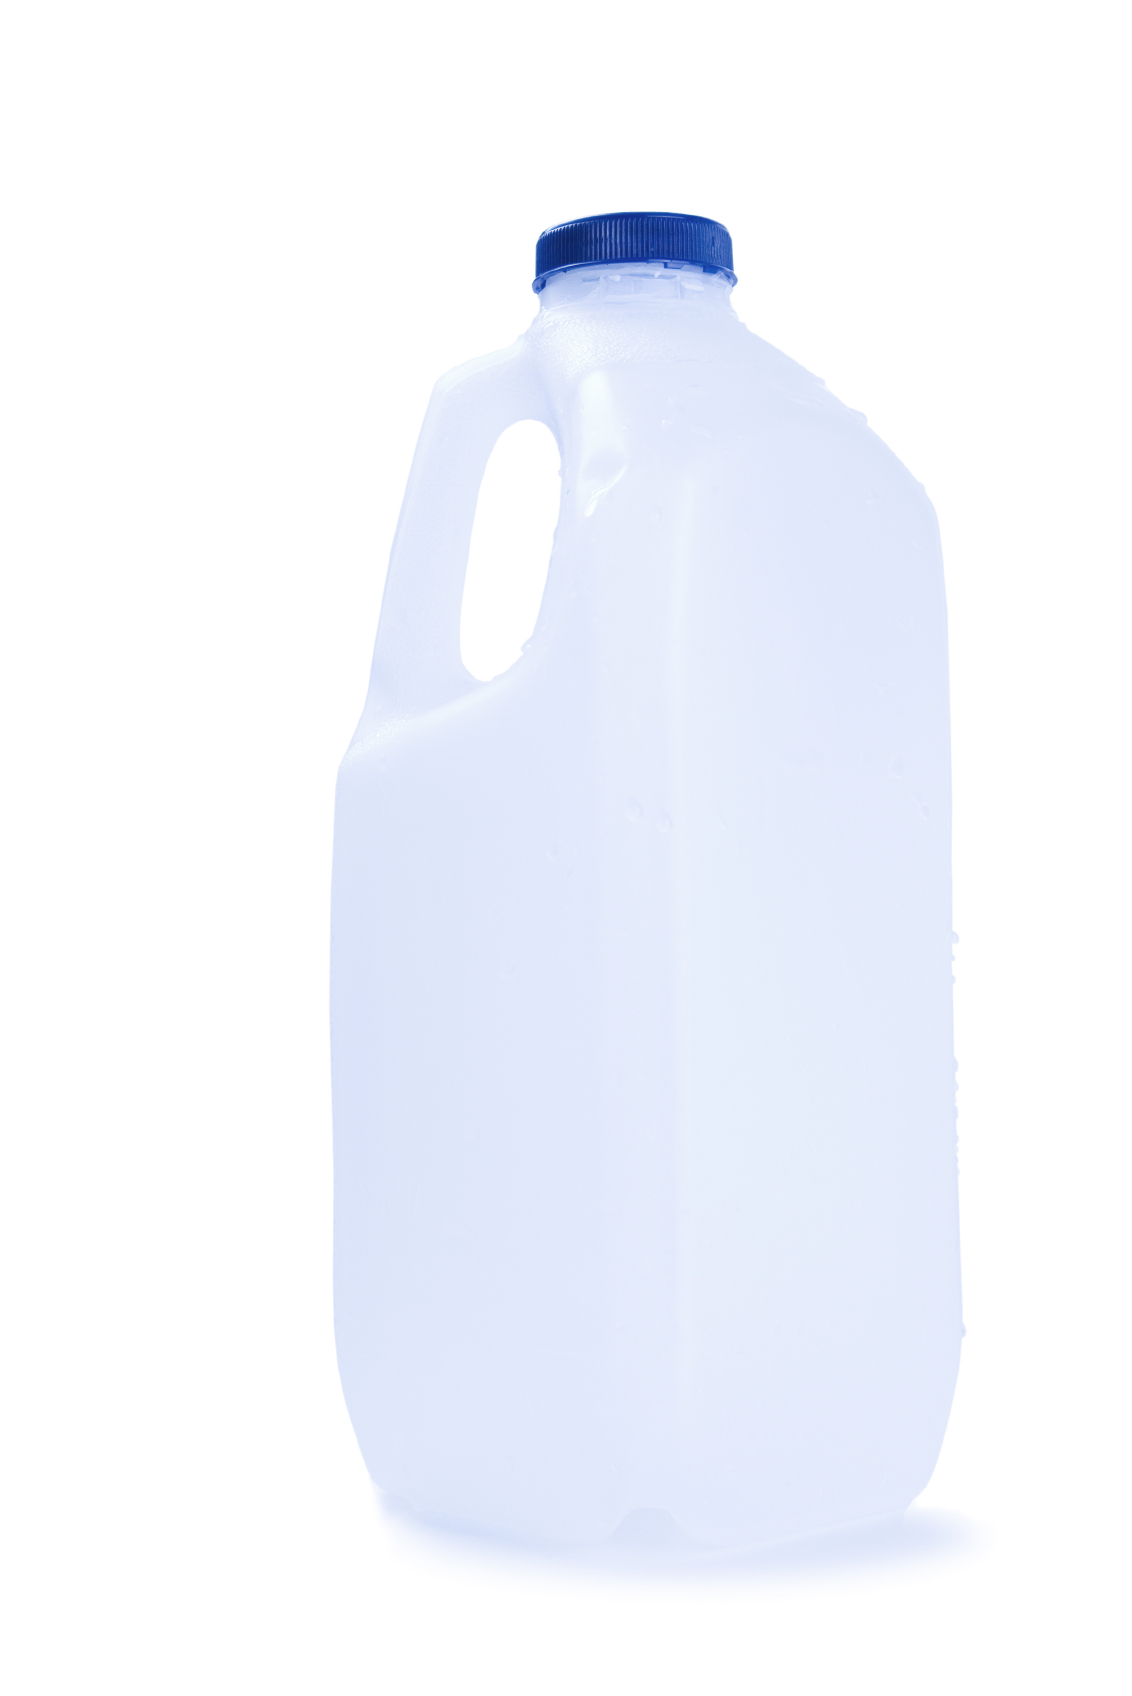 Milk Jug clipart gallon water Clipart Recycling Marion Plastic cps